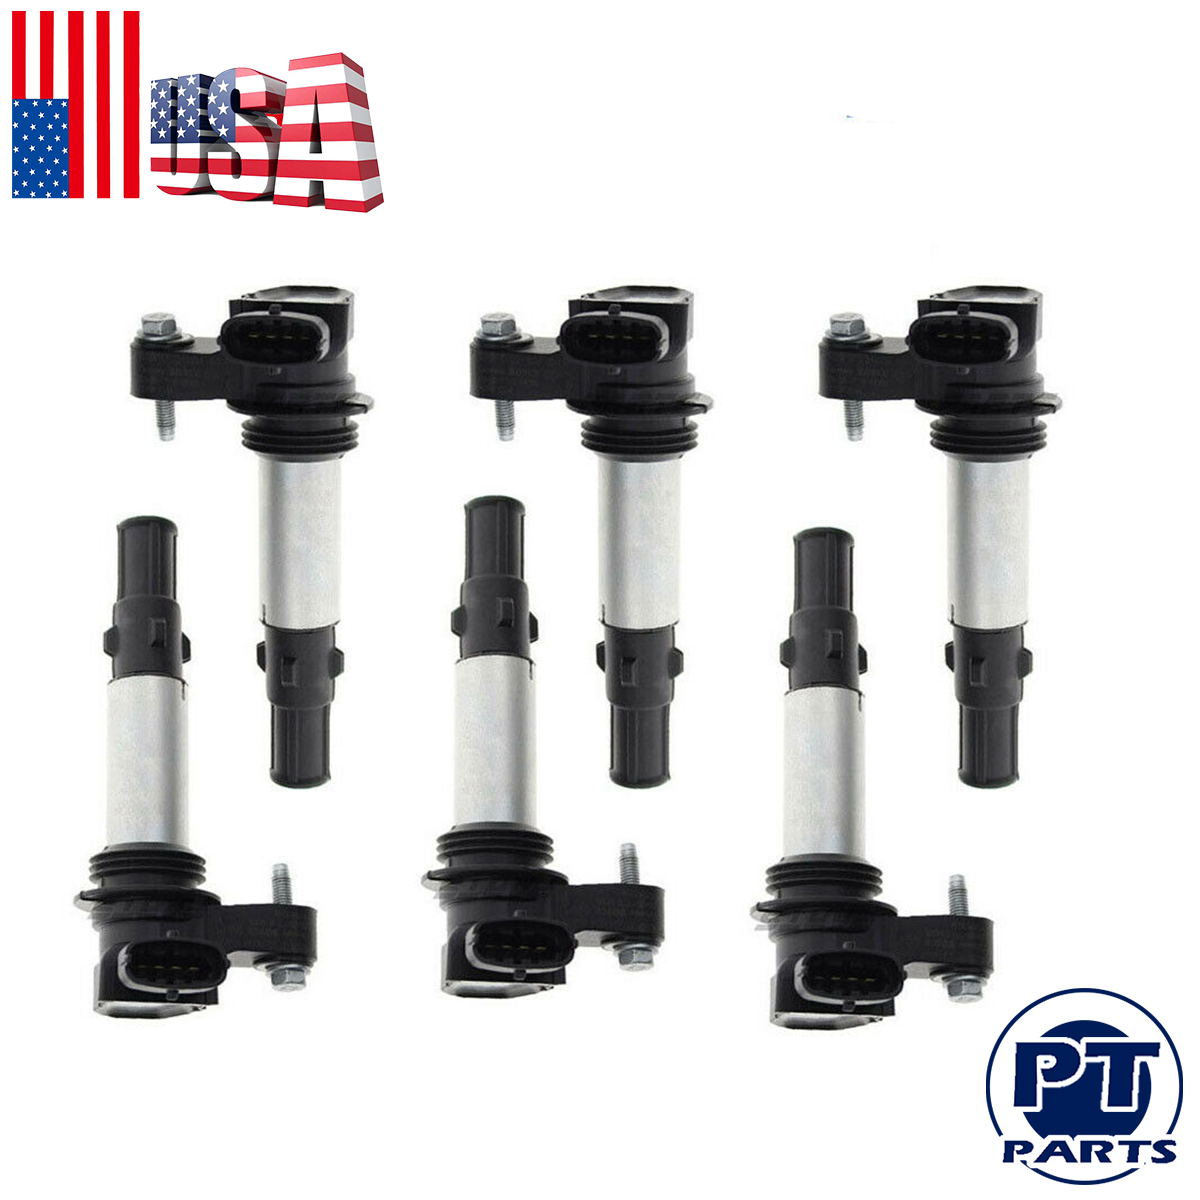 6 Pcs Ignition Coil FOR GM UF375 Cadillac Buick Acadia